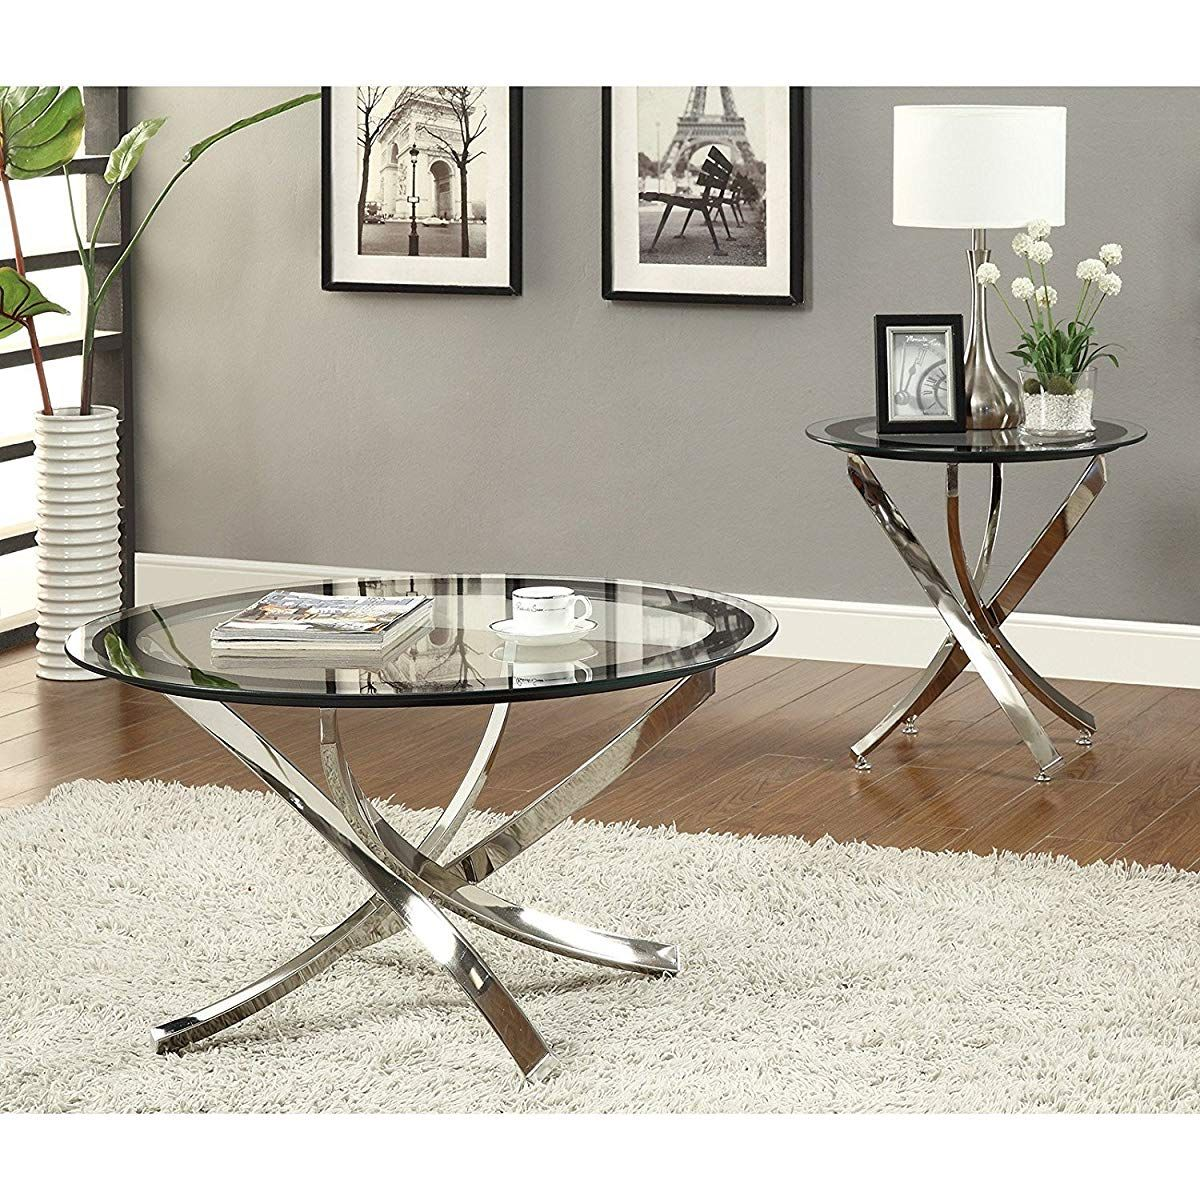 Small Round Glass End Table Round Clear Tempered Glass End Table Chrome End Table Side